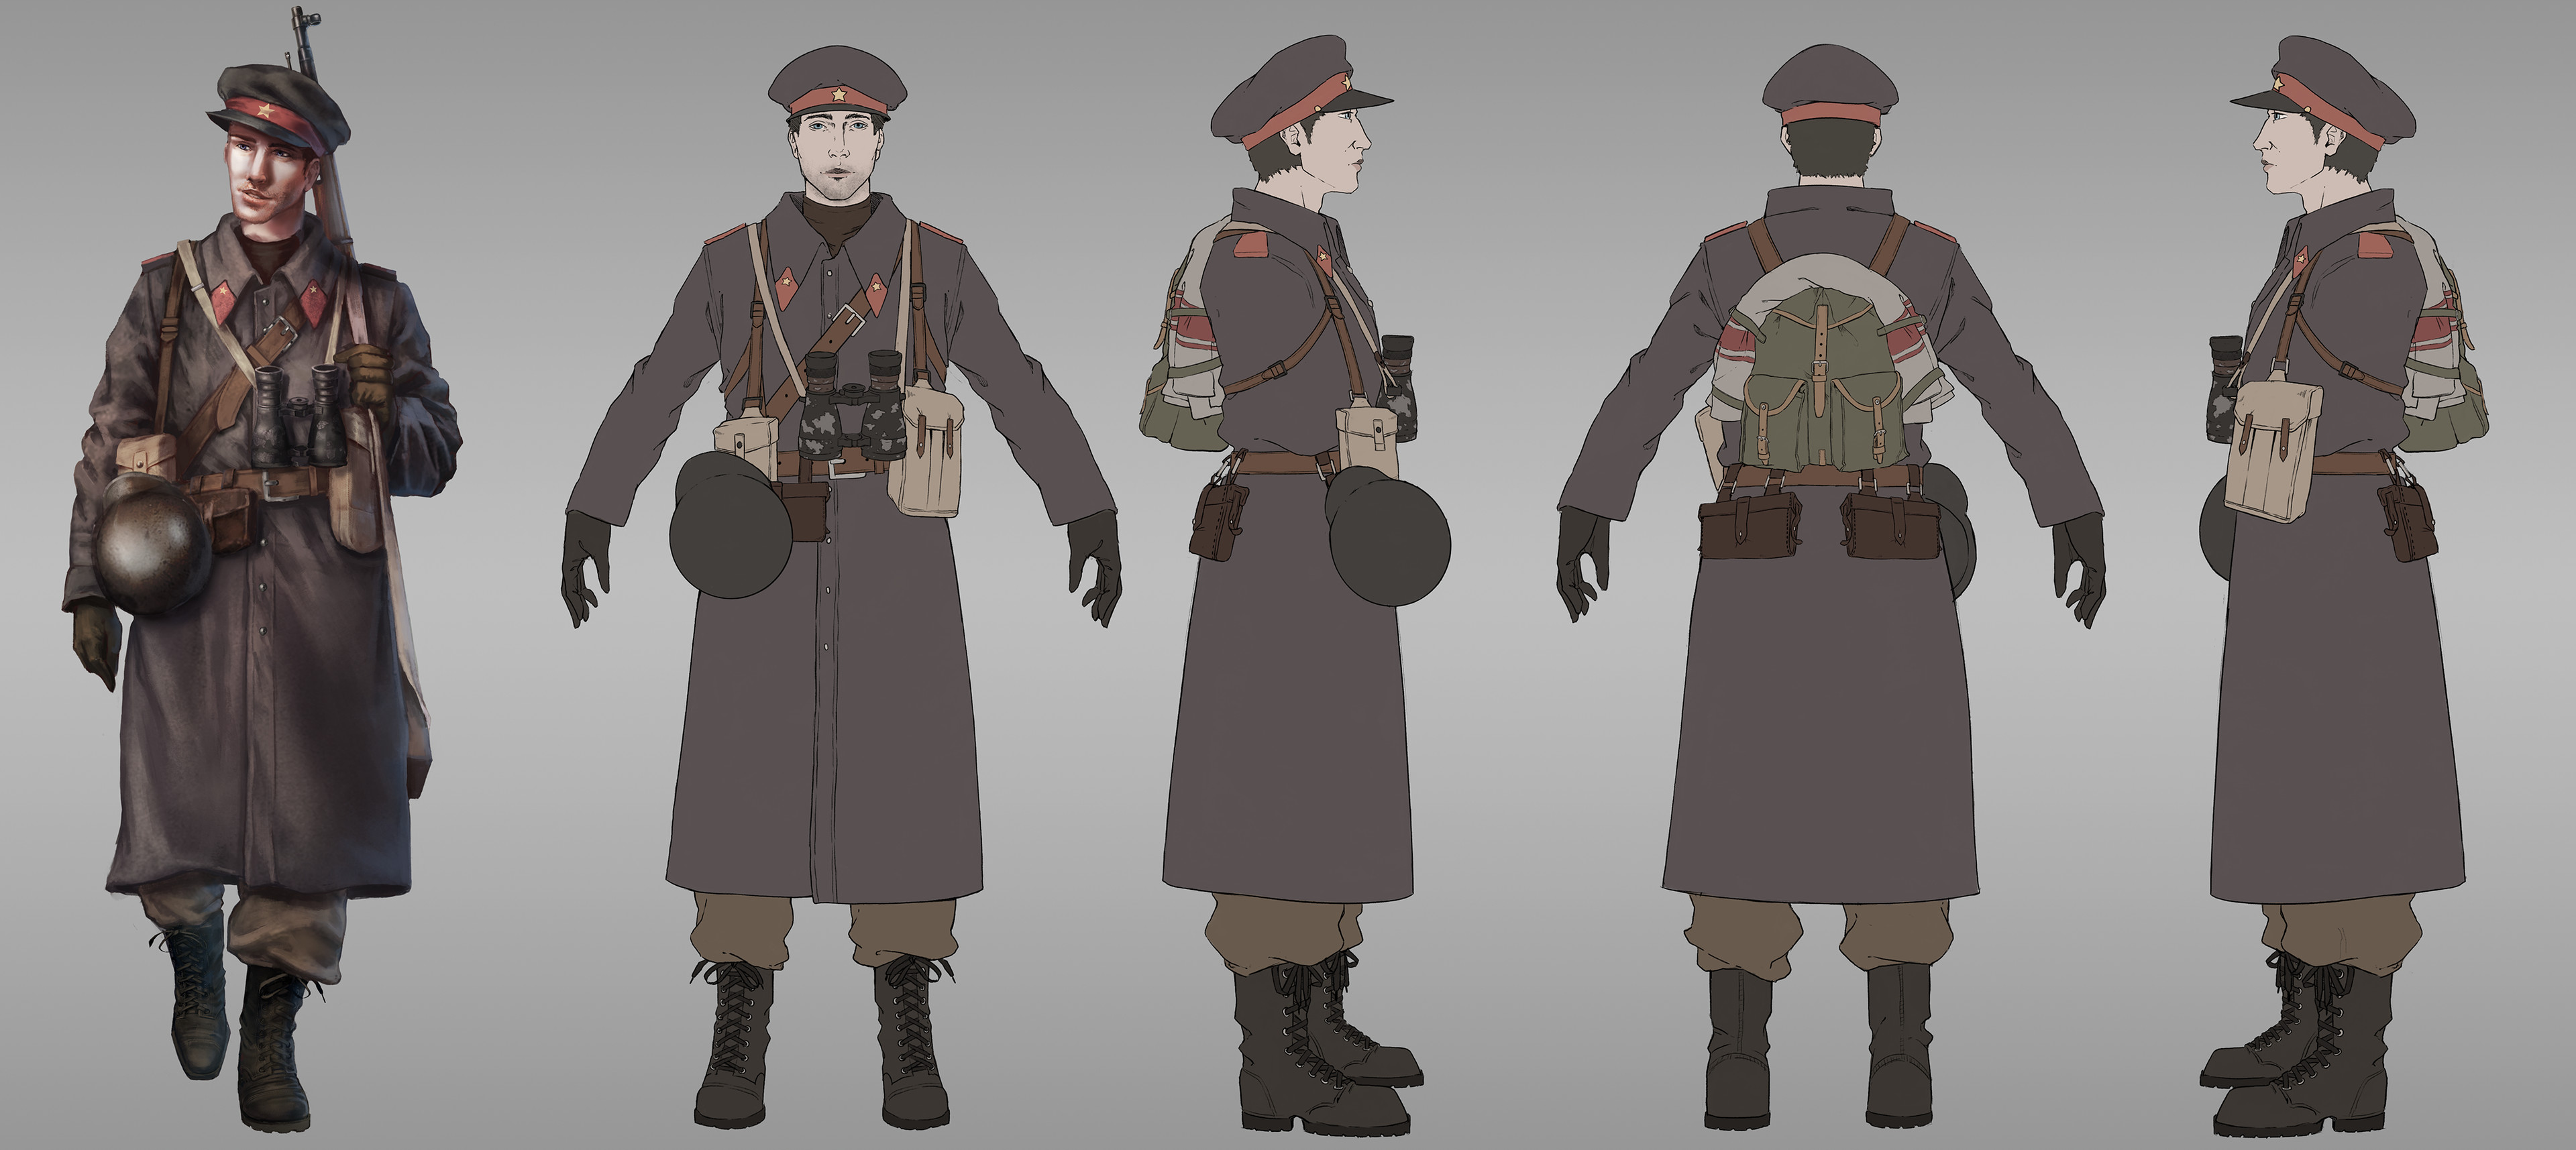 Soviet/USSR character deisgn breakdown. To break up my 3 silhouettes within the team, I decided to go with a long coat for the Soviet soldier, since it's such a easily recognizable aspect of their uniform.